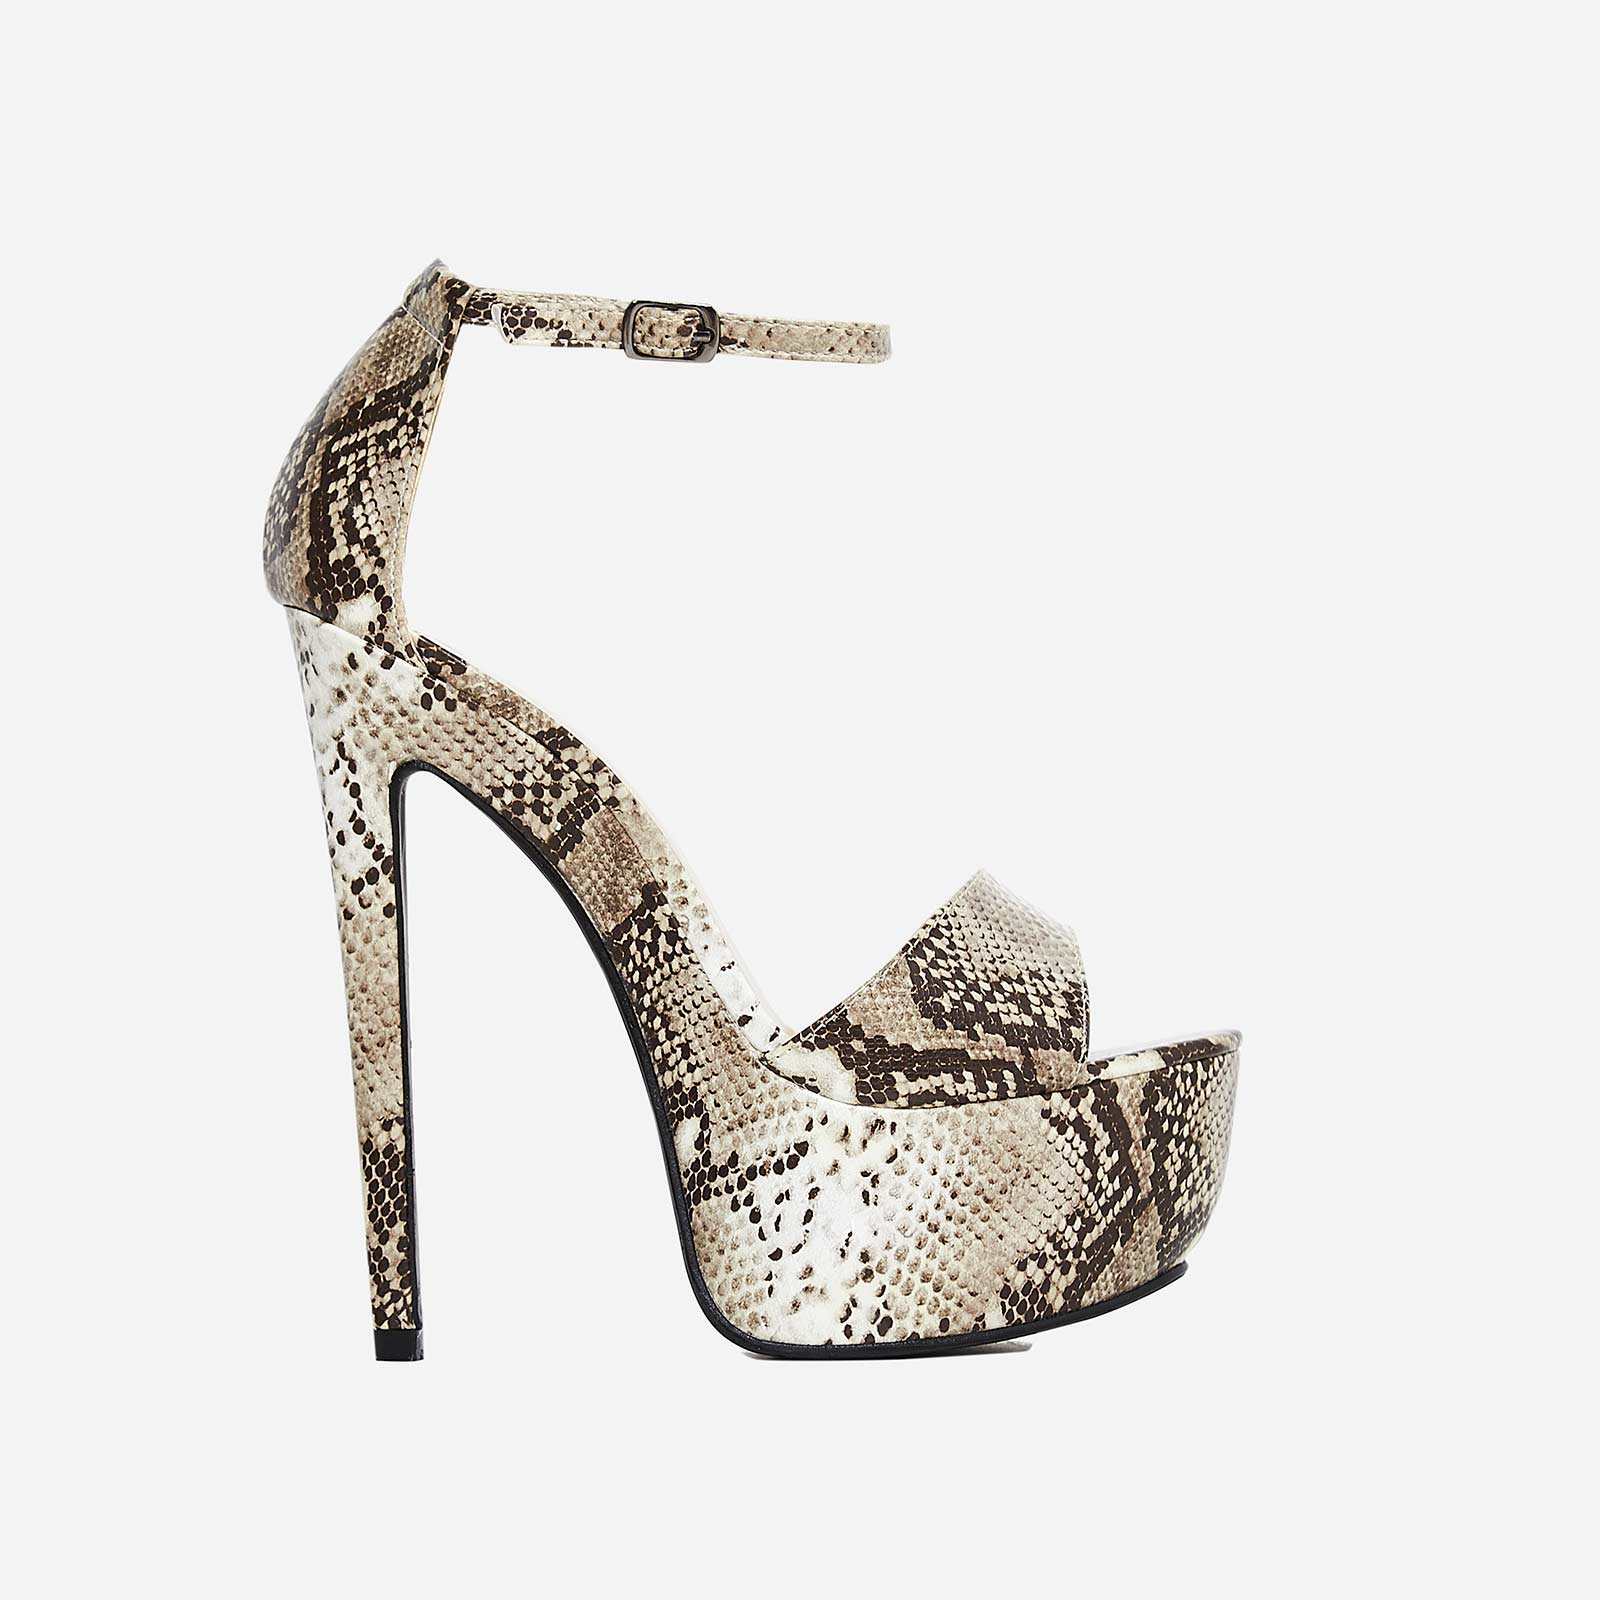 Mamba Platform Heel In Nude Snake Print Faux Leather